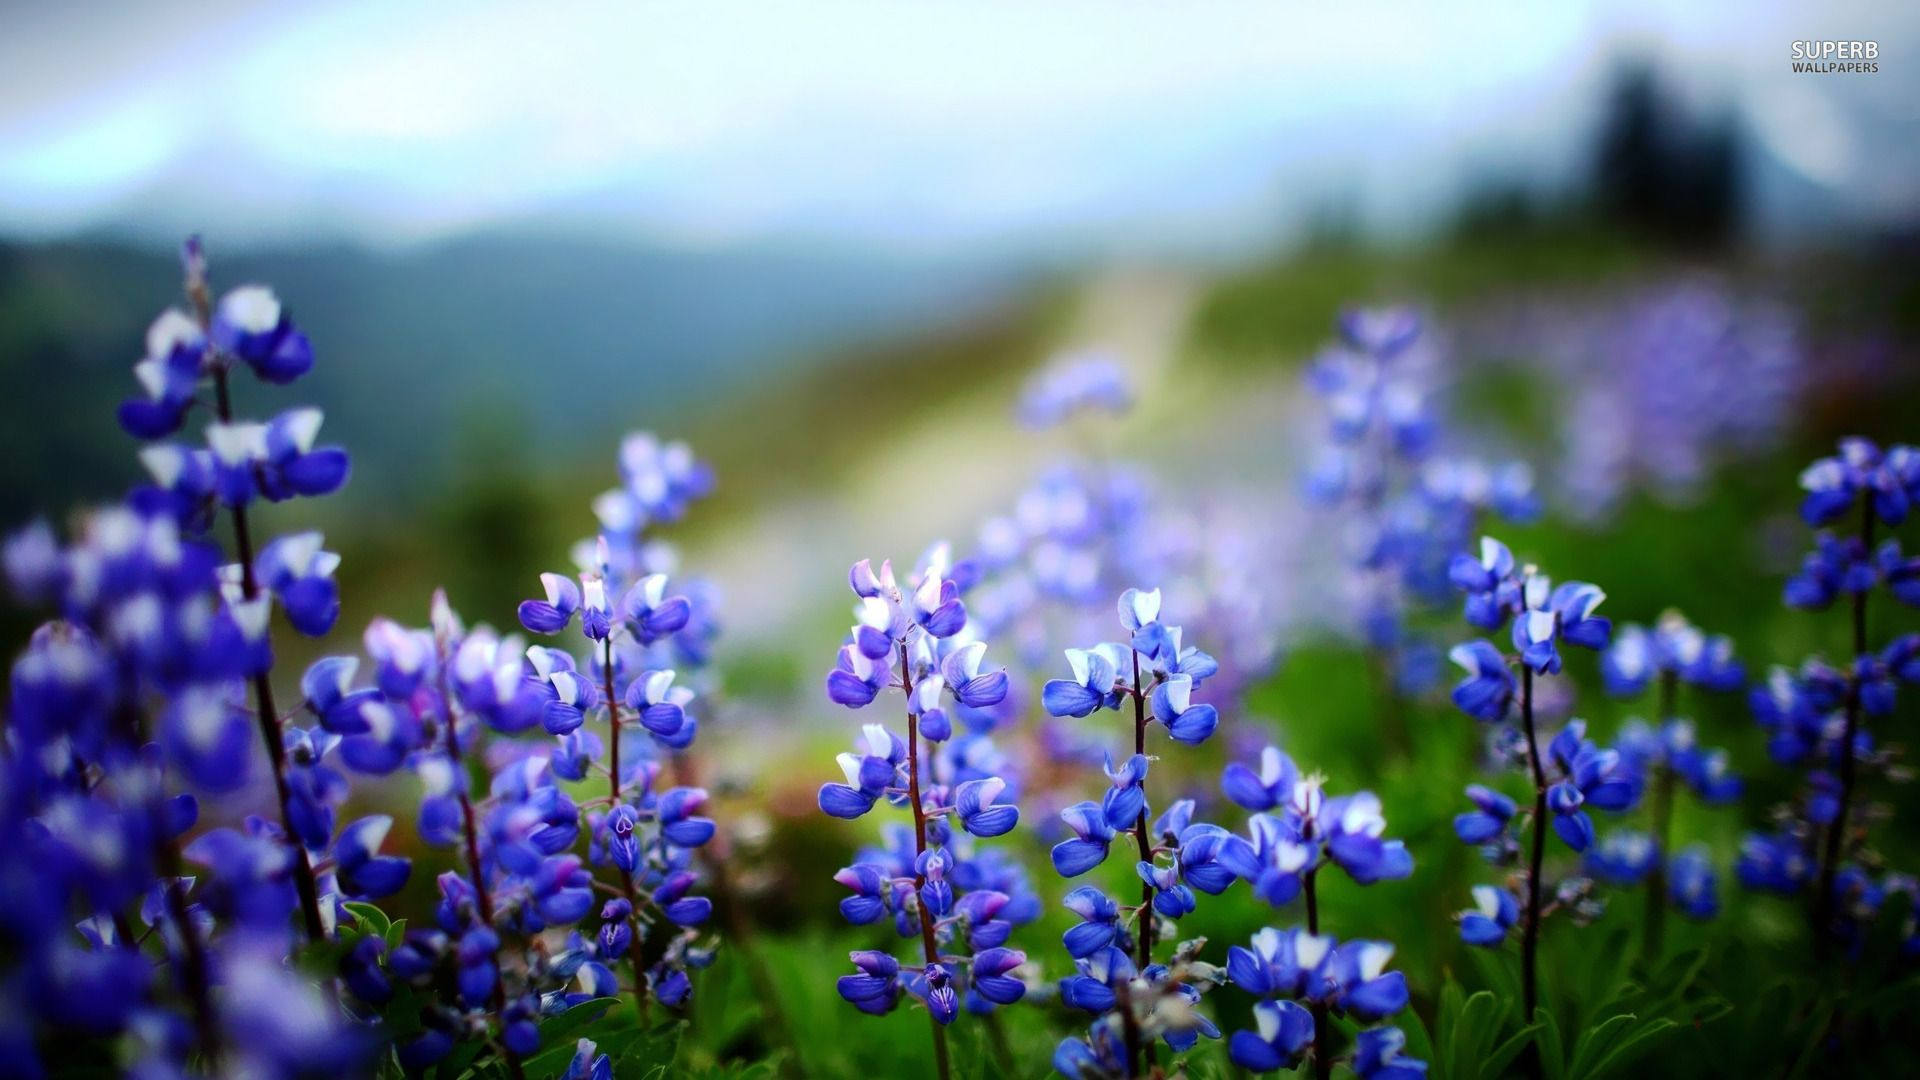 Lupines wallpaper Flower wallpapers 17822 Lupines